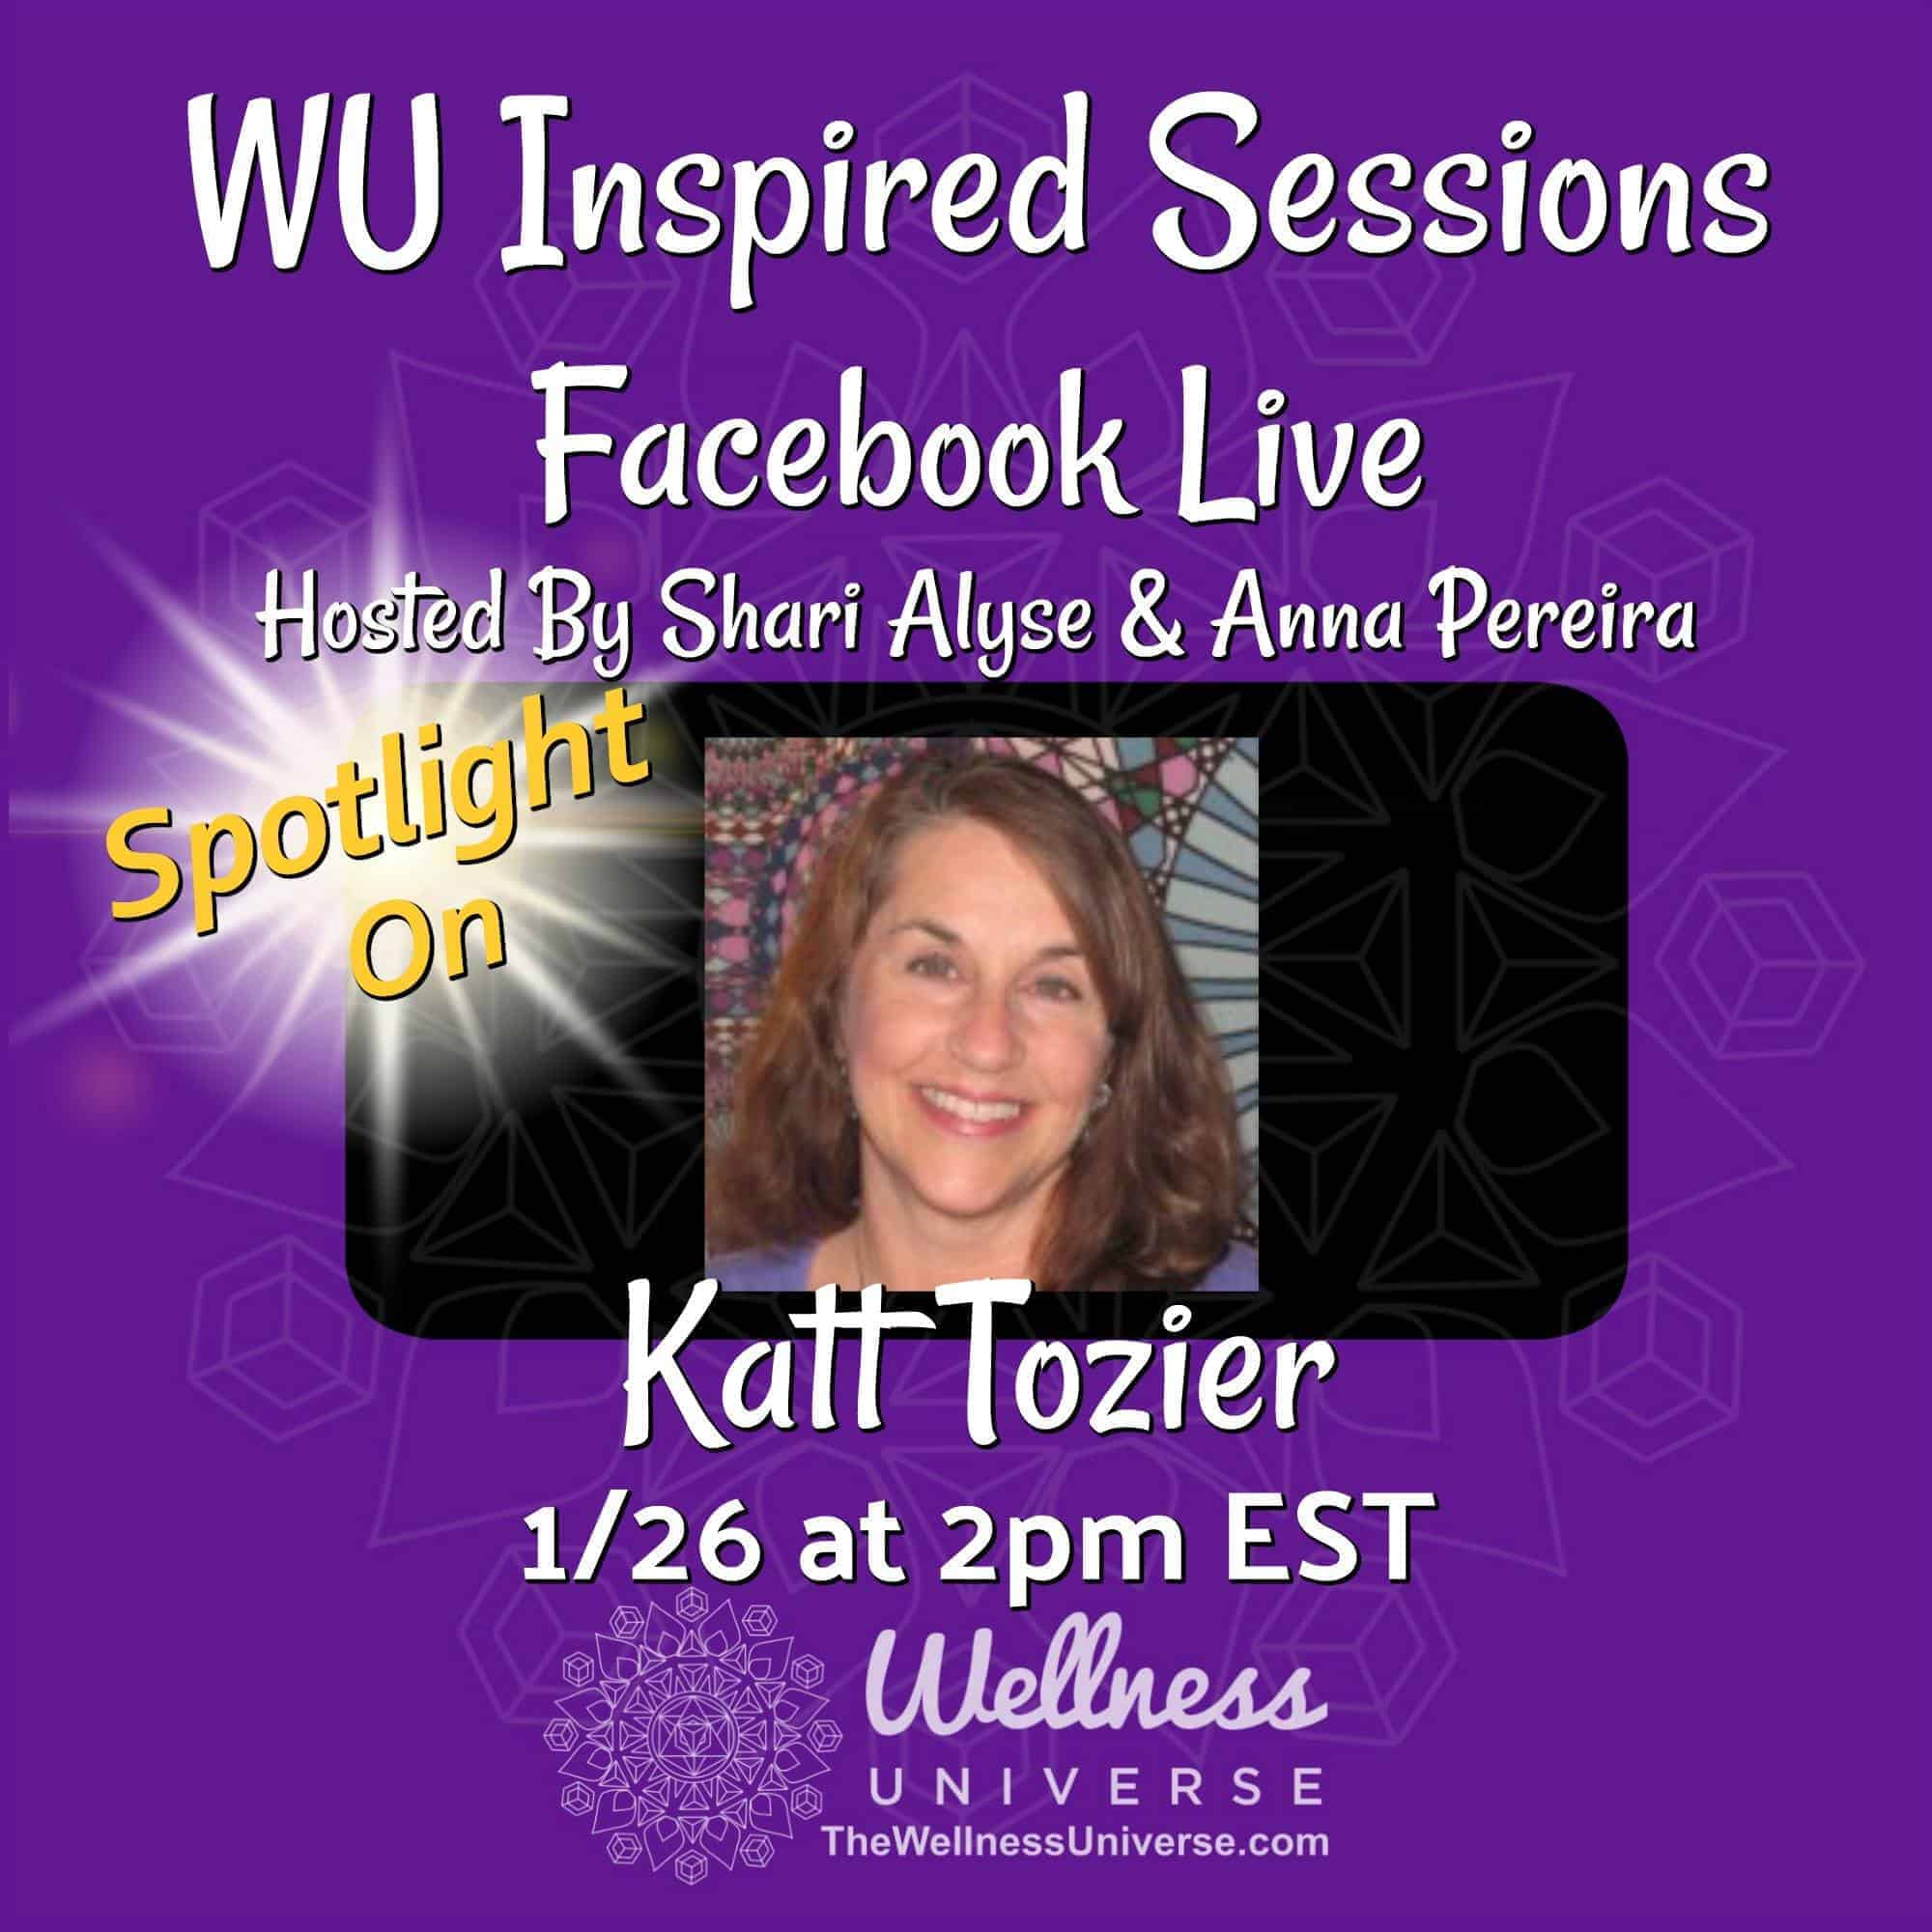 Reminder we are LIVE today, 1/26 at 2pm EST with WU World-Changer @katttozier! Join us and receive h